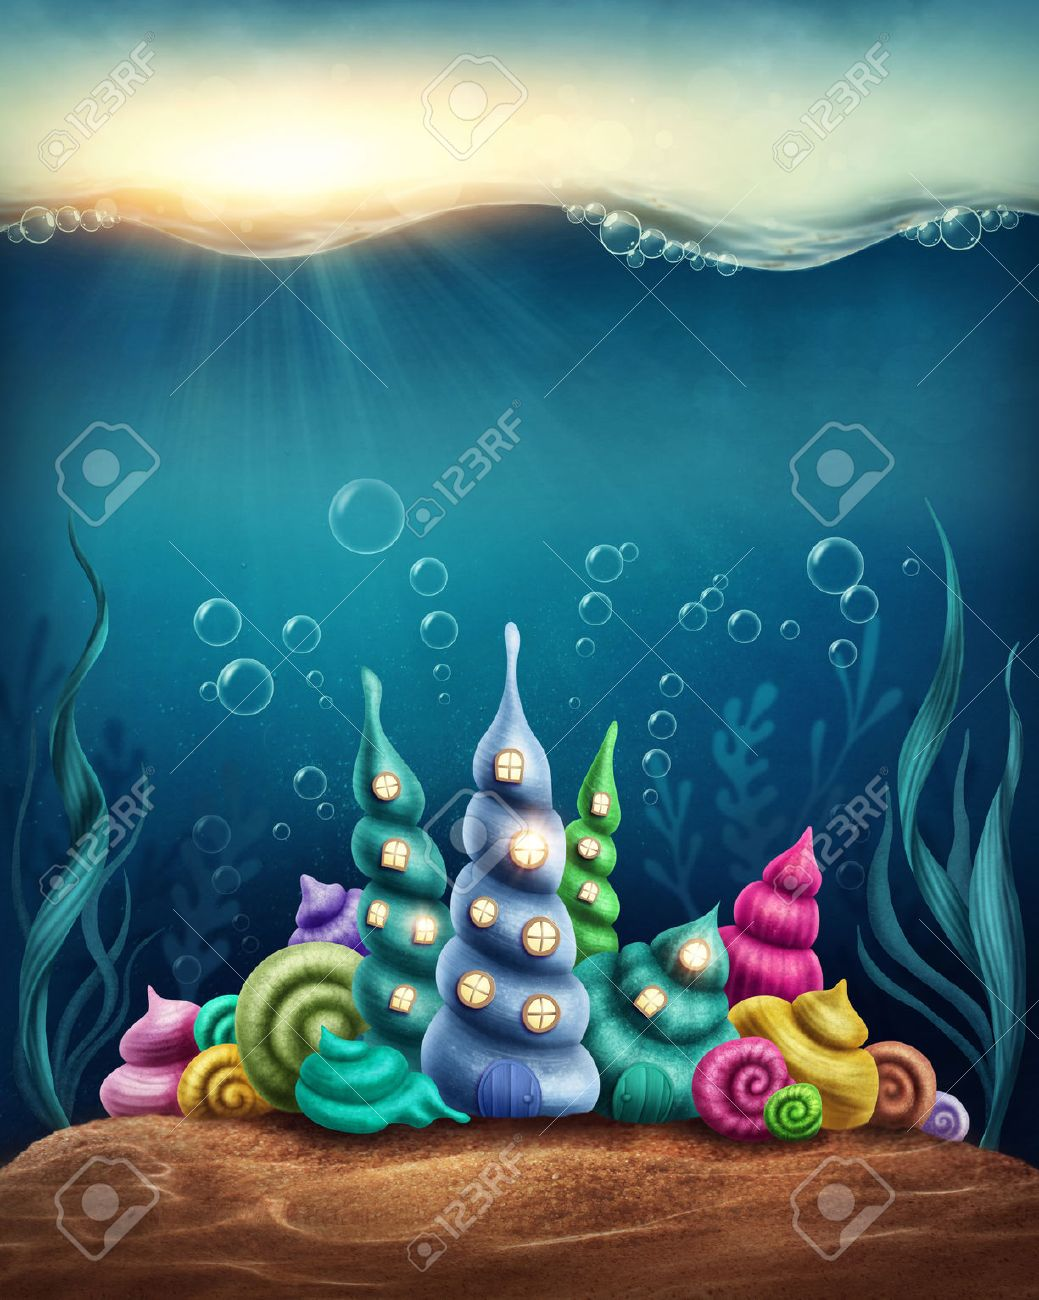 Underwater fantasy kingdom with shell houses Stock Photo - 40898258